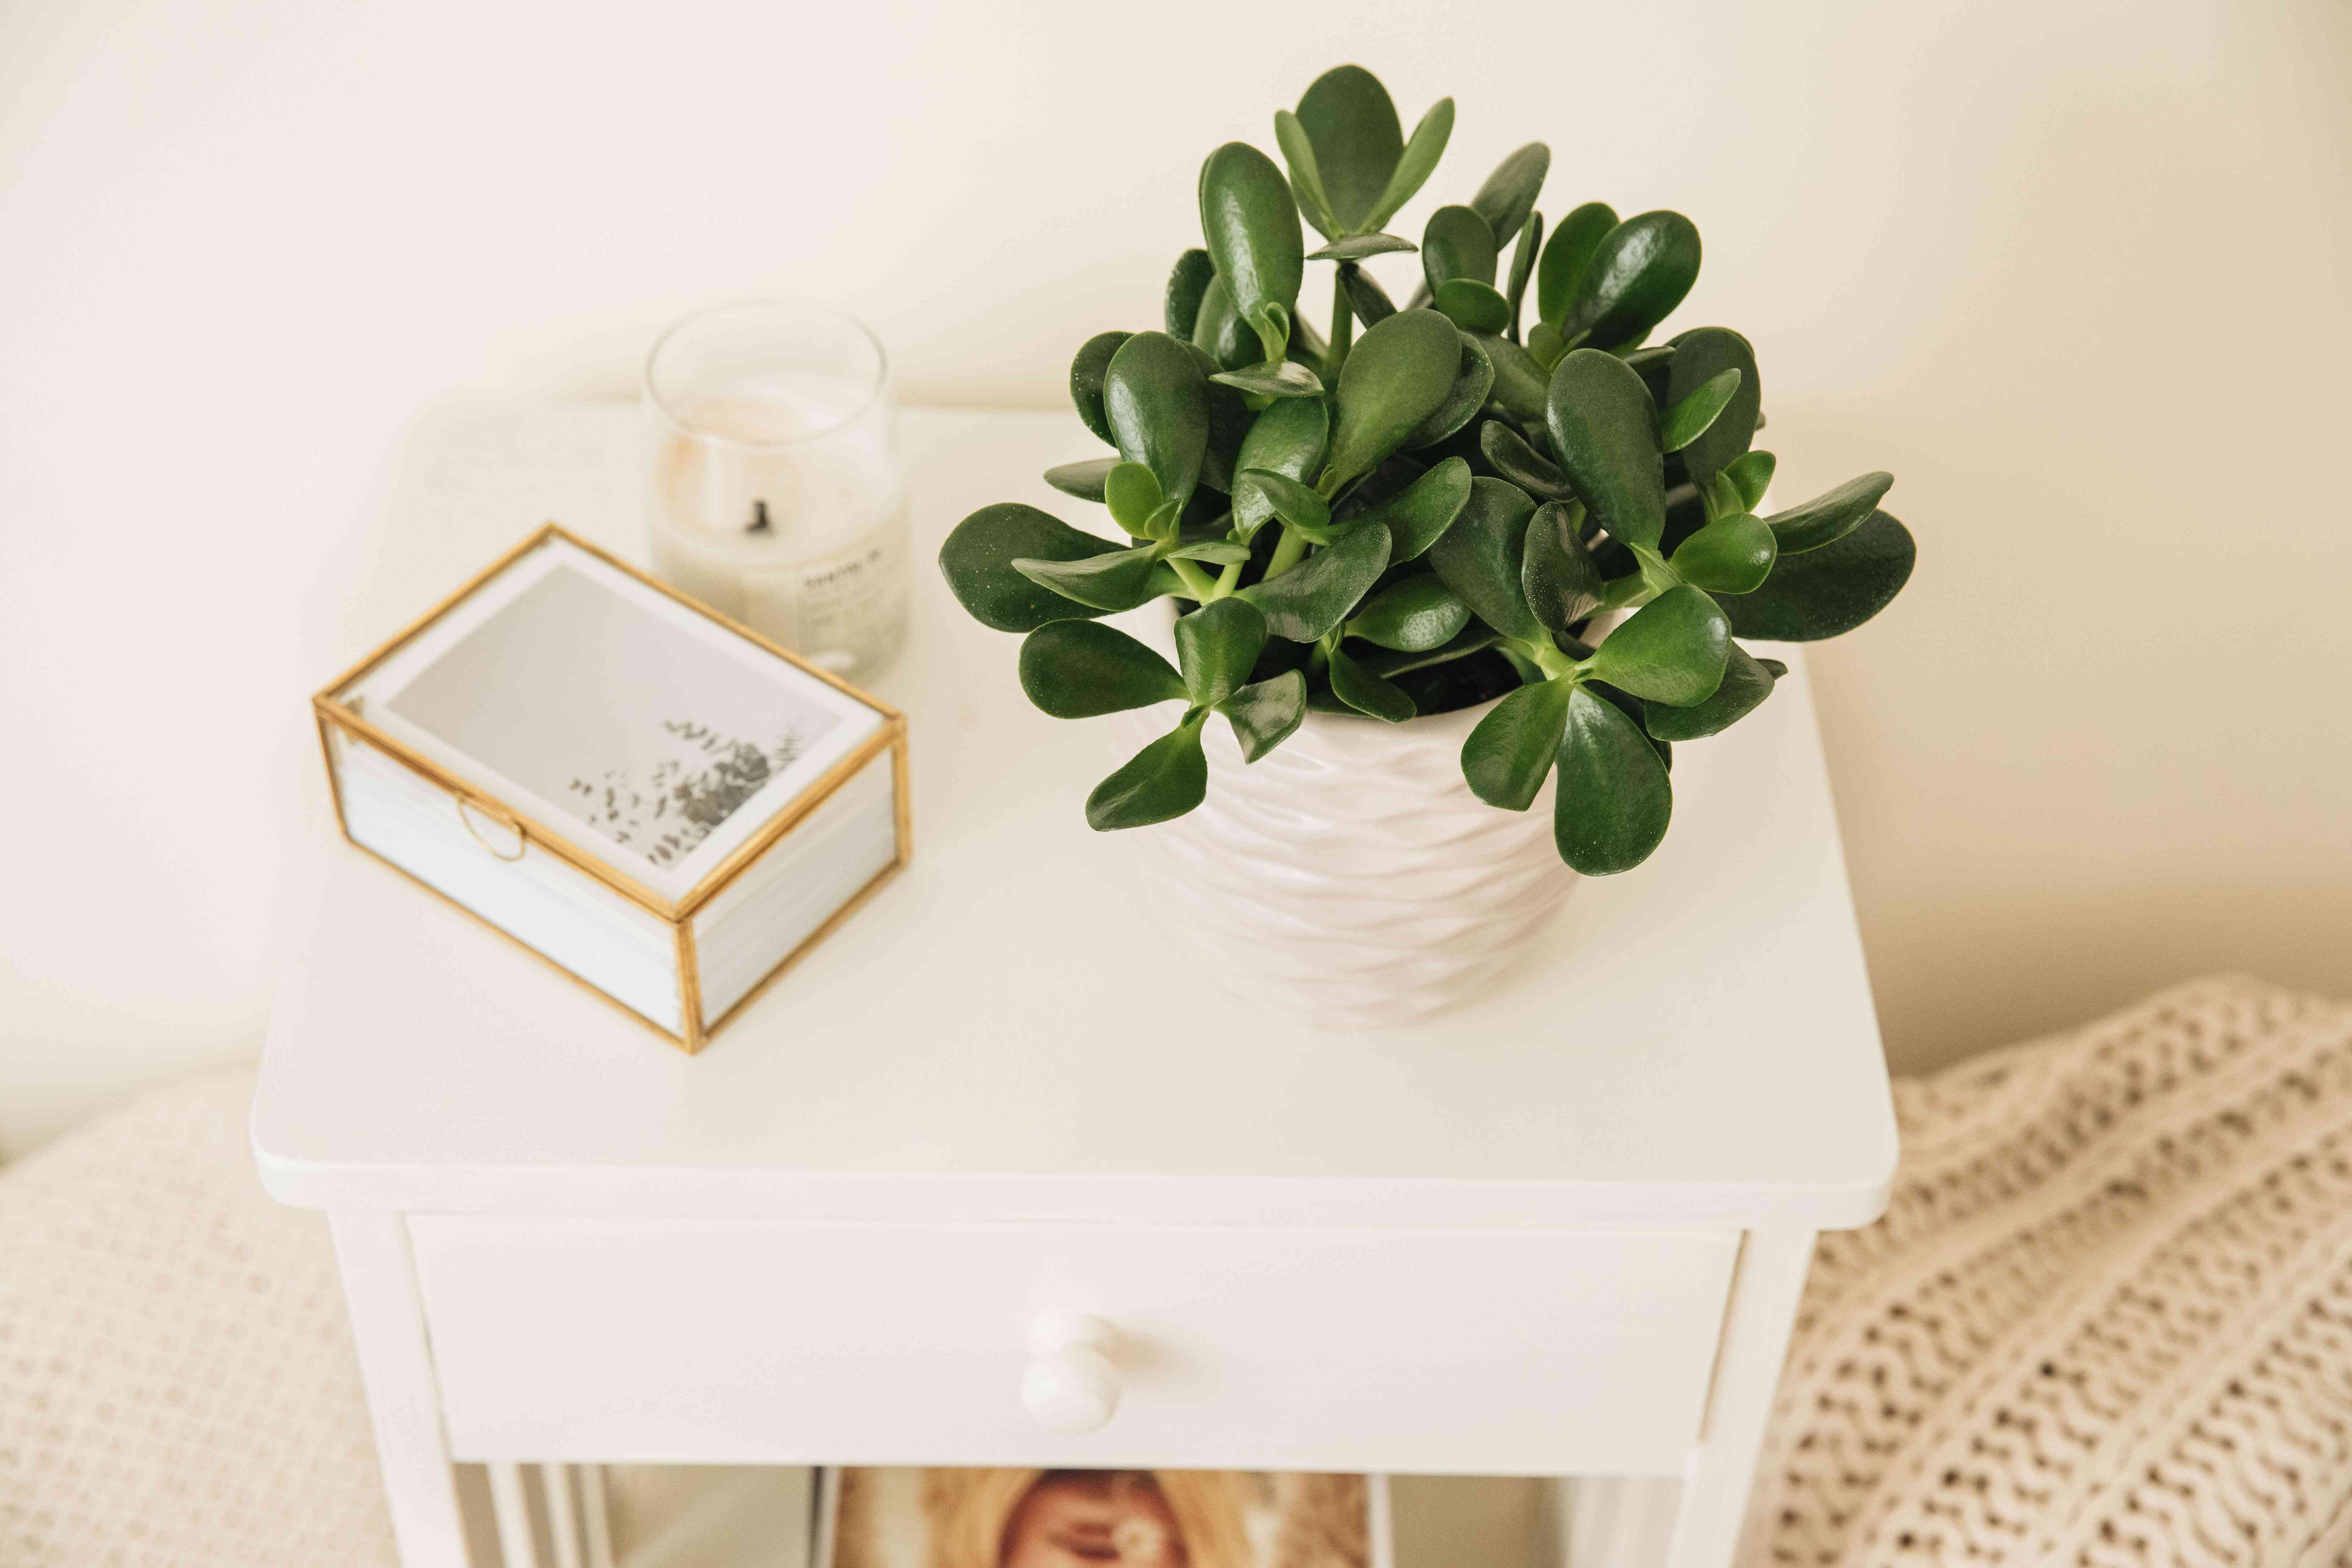 Jade plant in white pot on white nightstand next to feng shui decor items